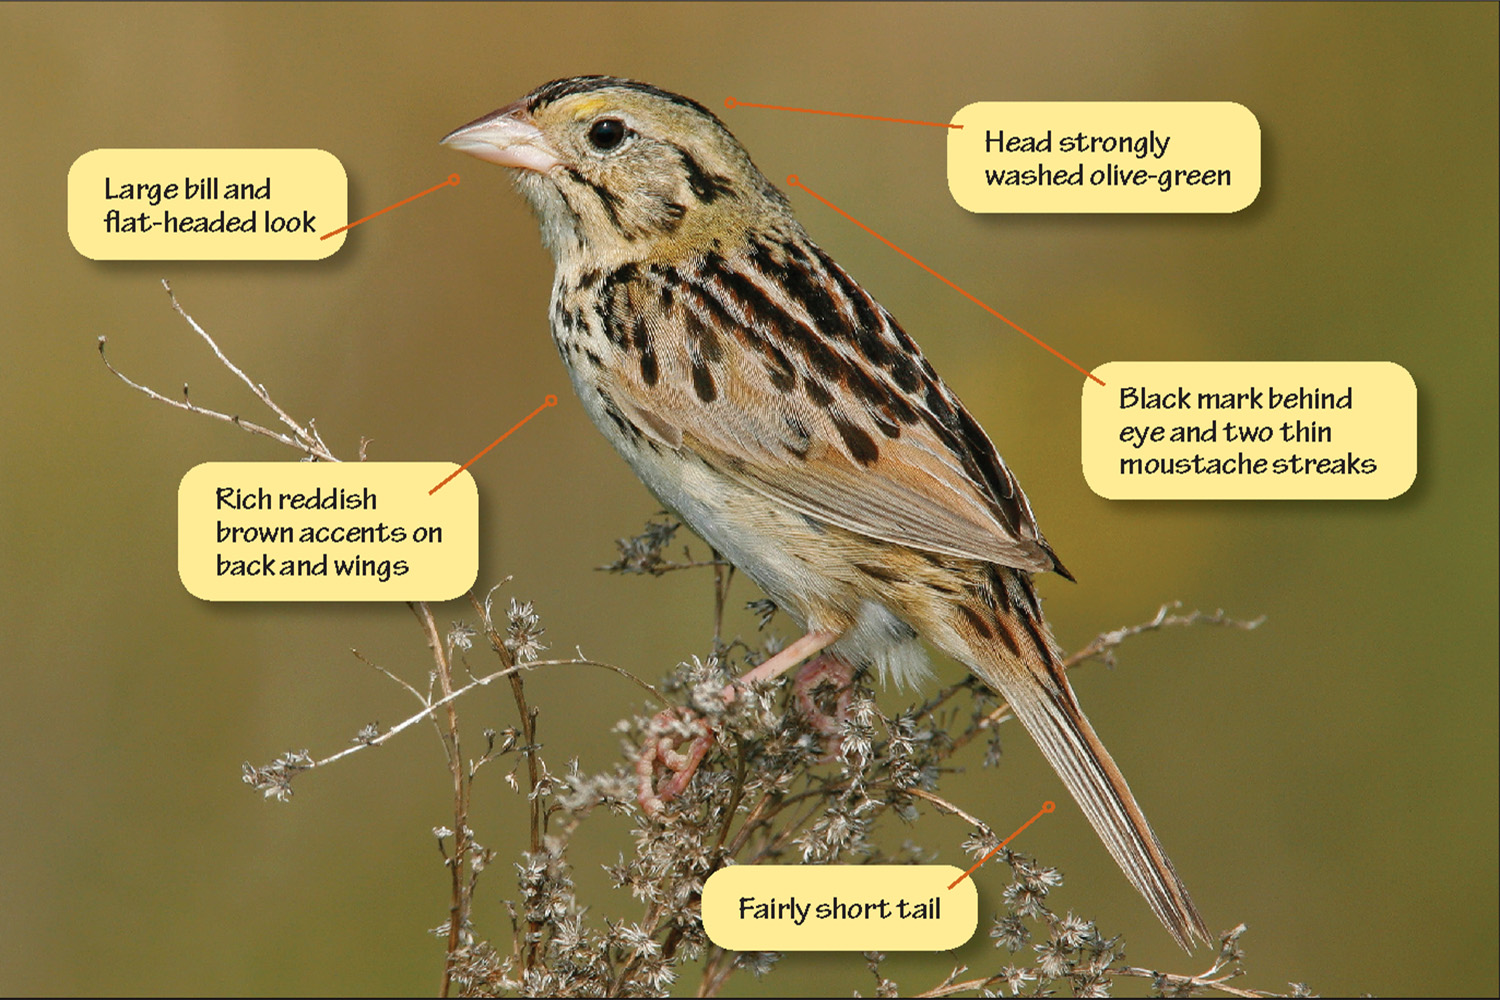 Identifying Henslow's Sparrow, Grasshopper Sparrow, and Baird's Sparrow